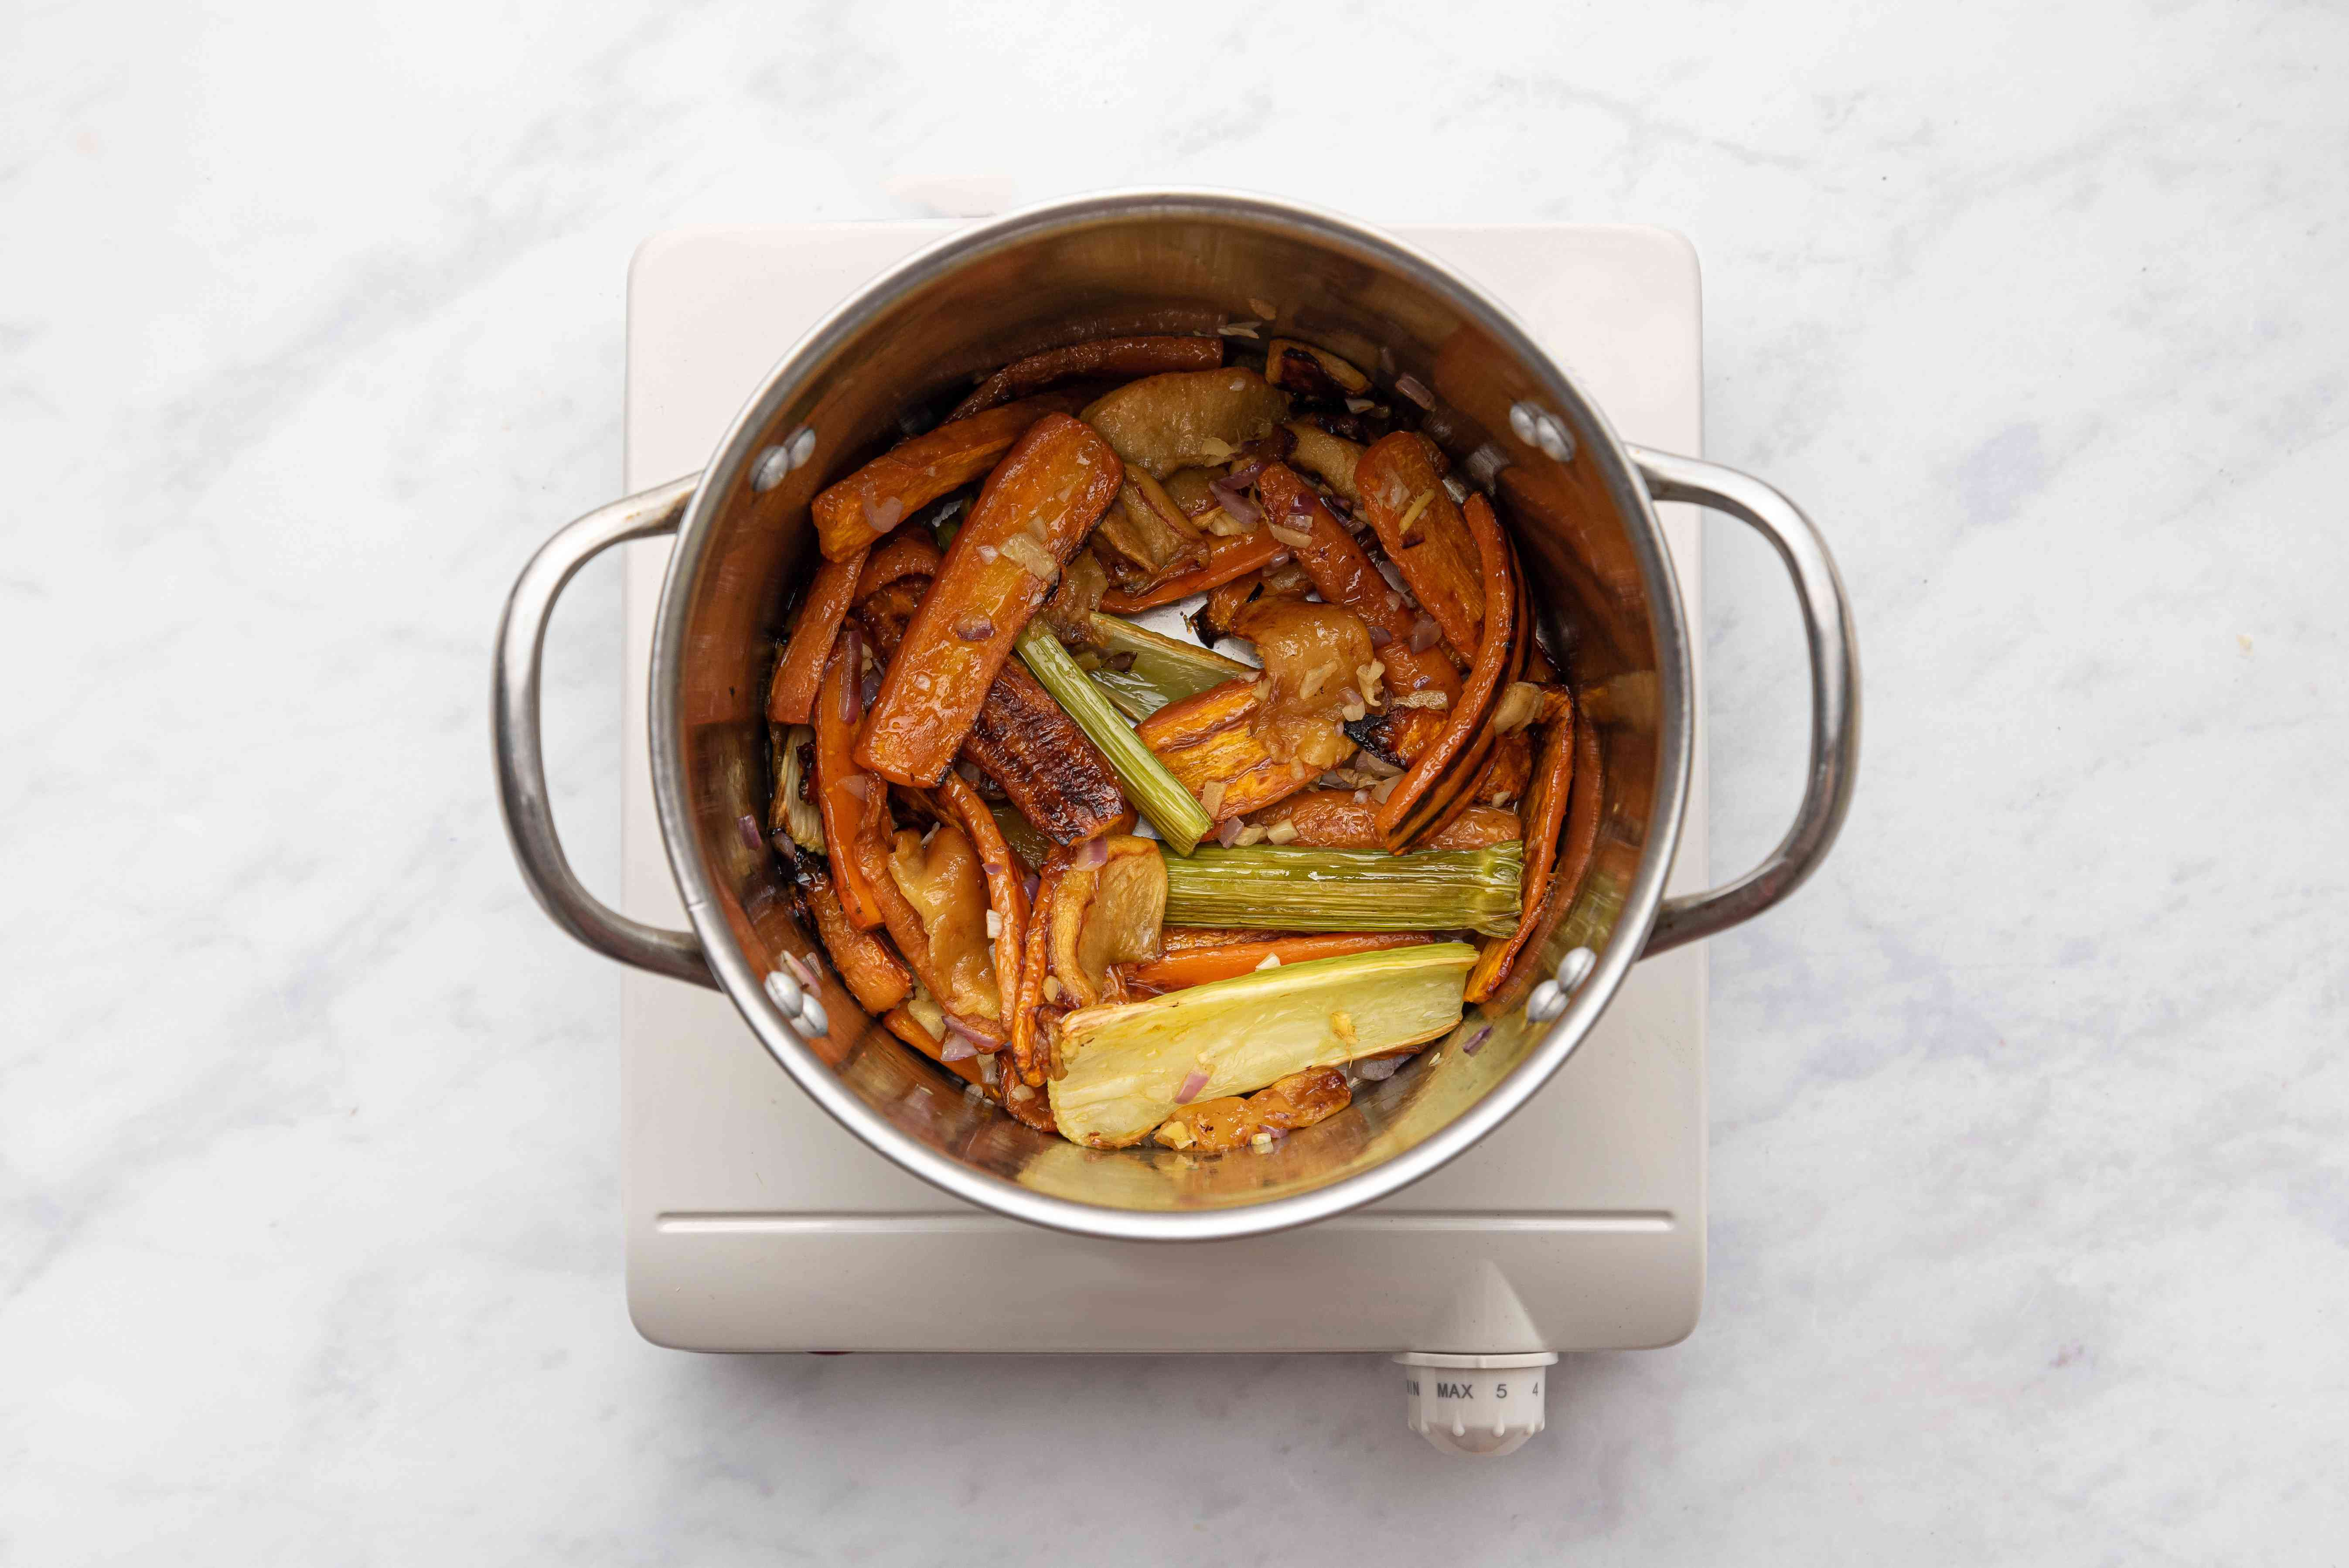 Roasted vegetables in a pot